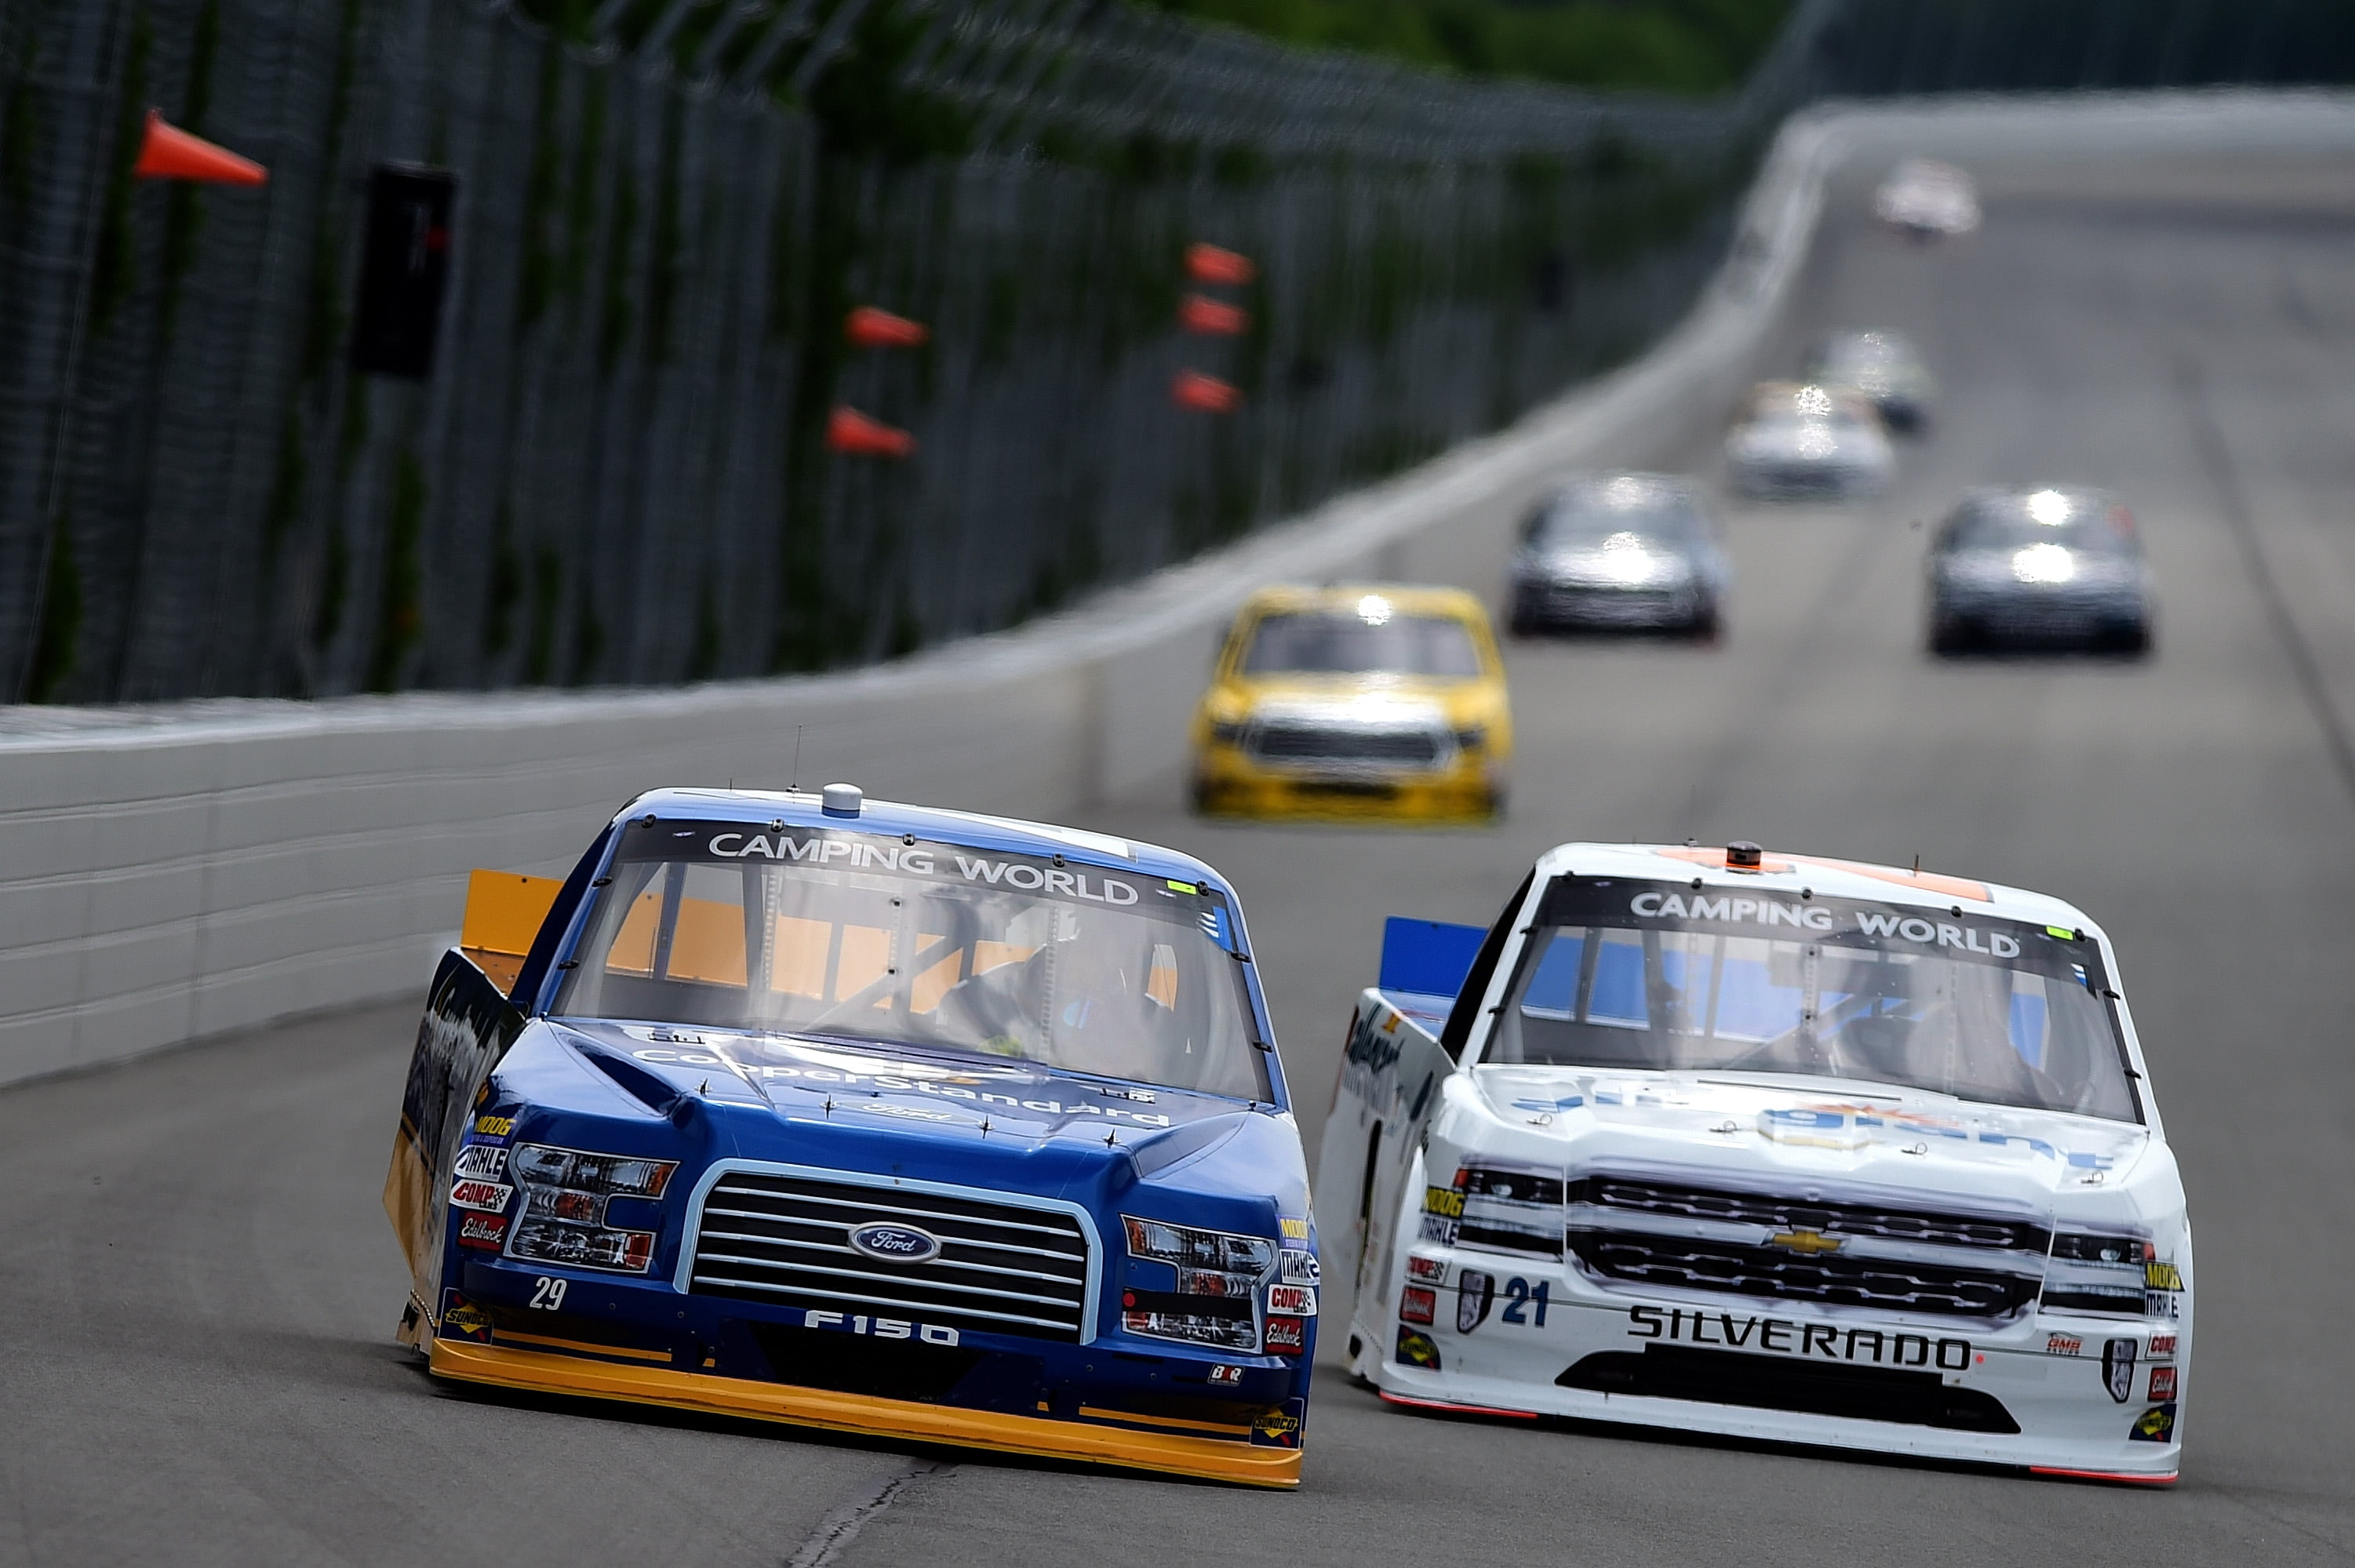 I'll Say it Again: NASCAR's Truck Series Needs Help